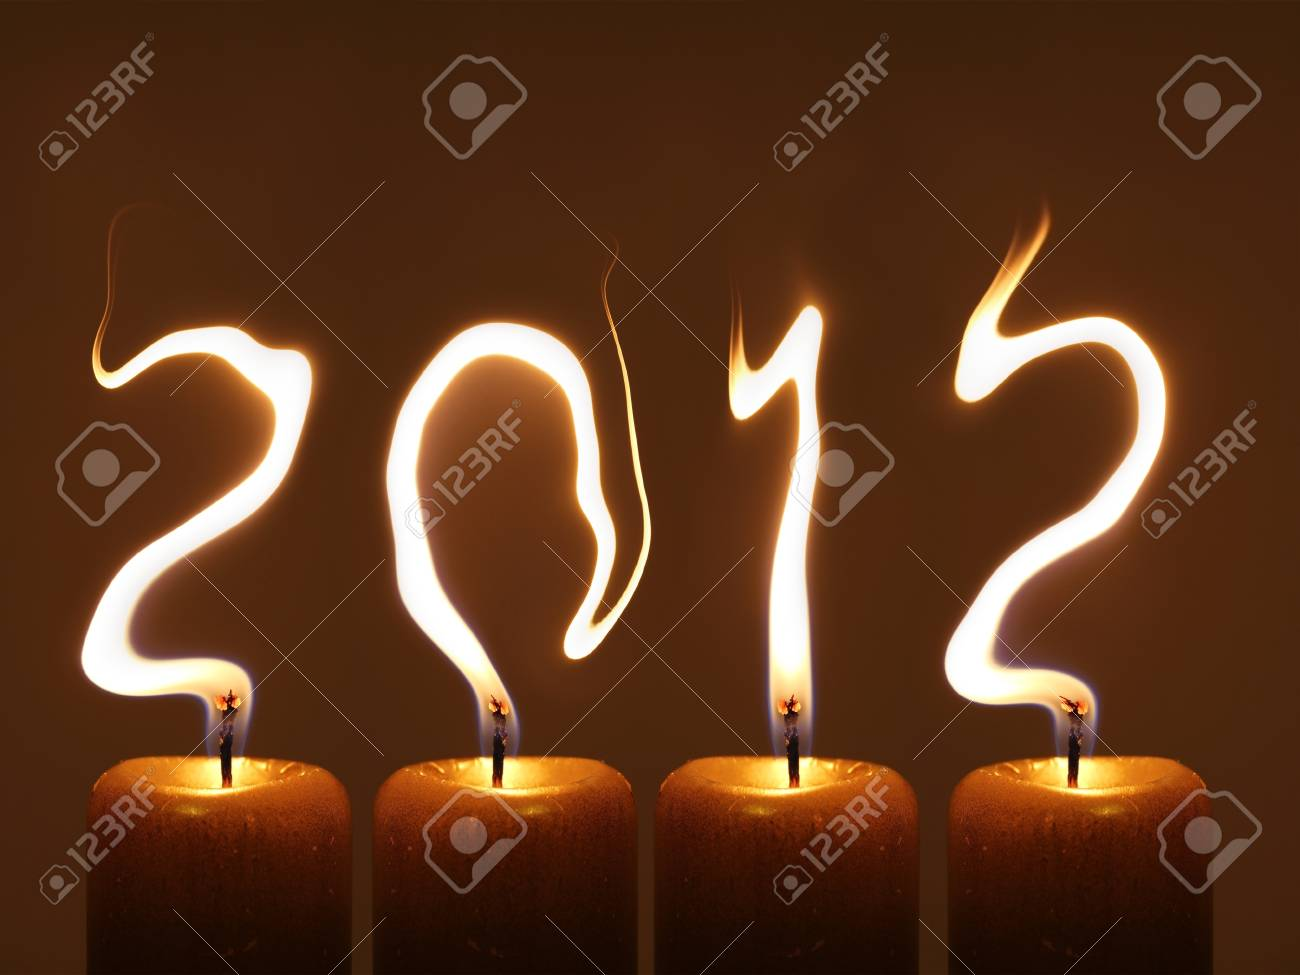 Happy new year 2012 - PF 2012 Stock Photo - 12995517